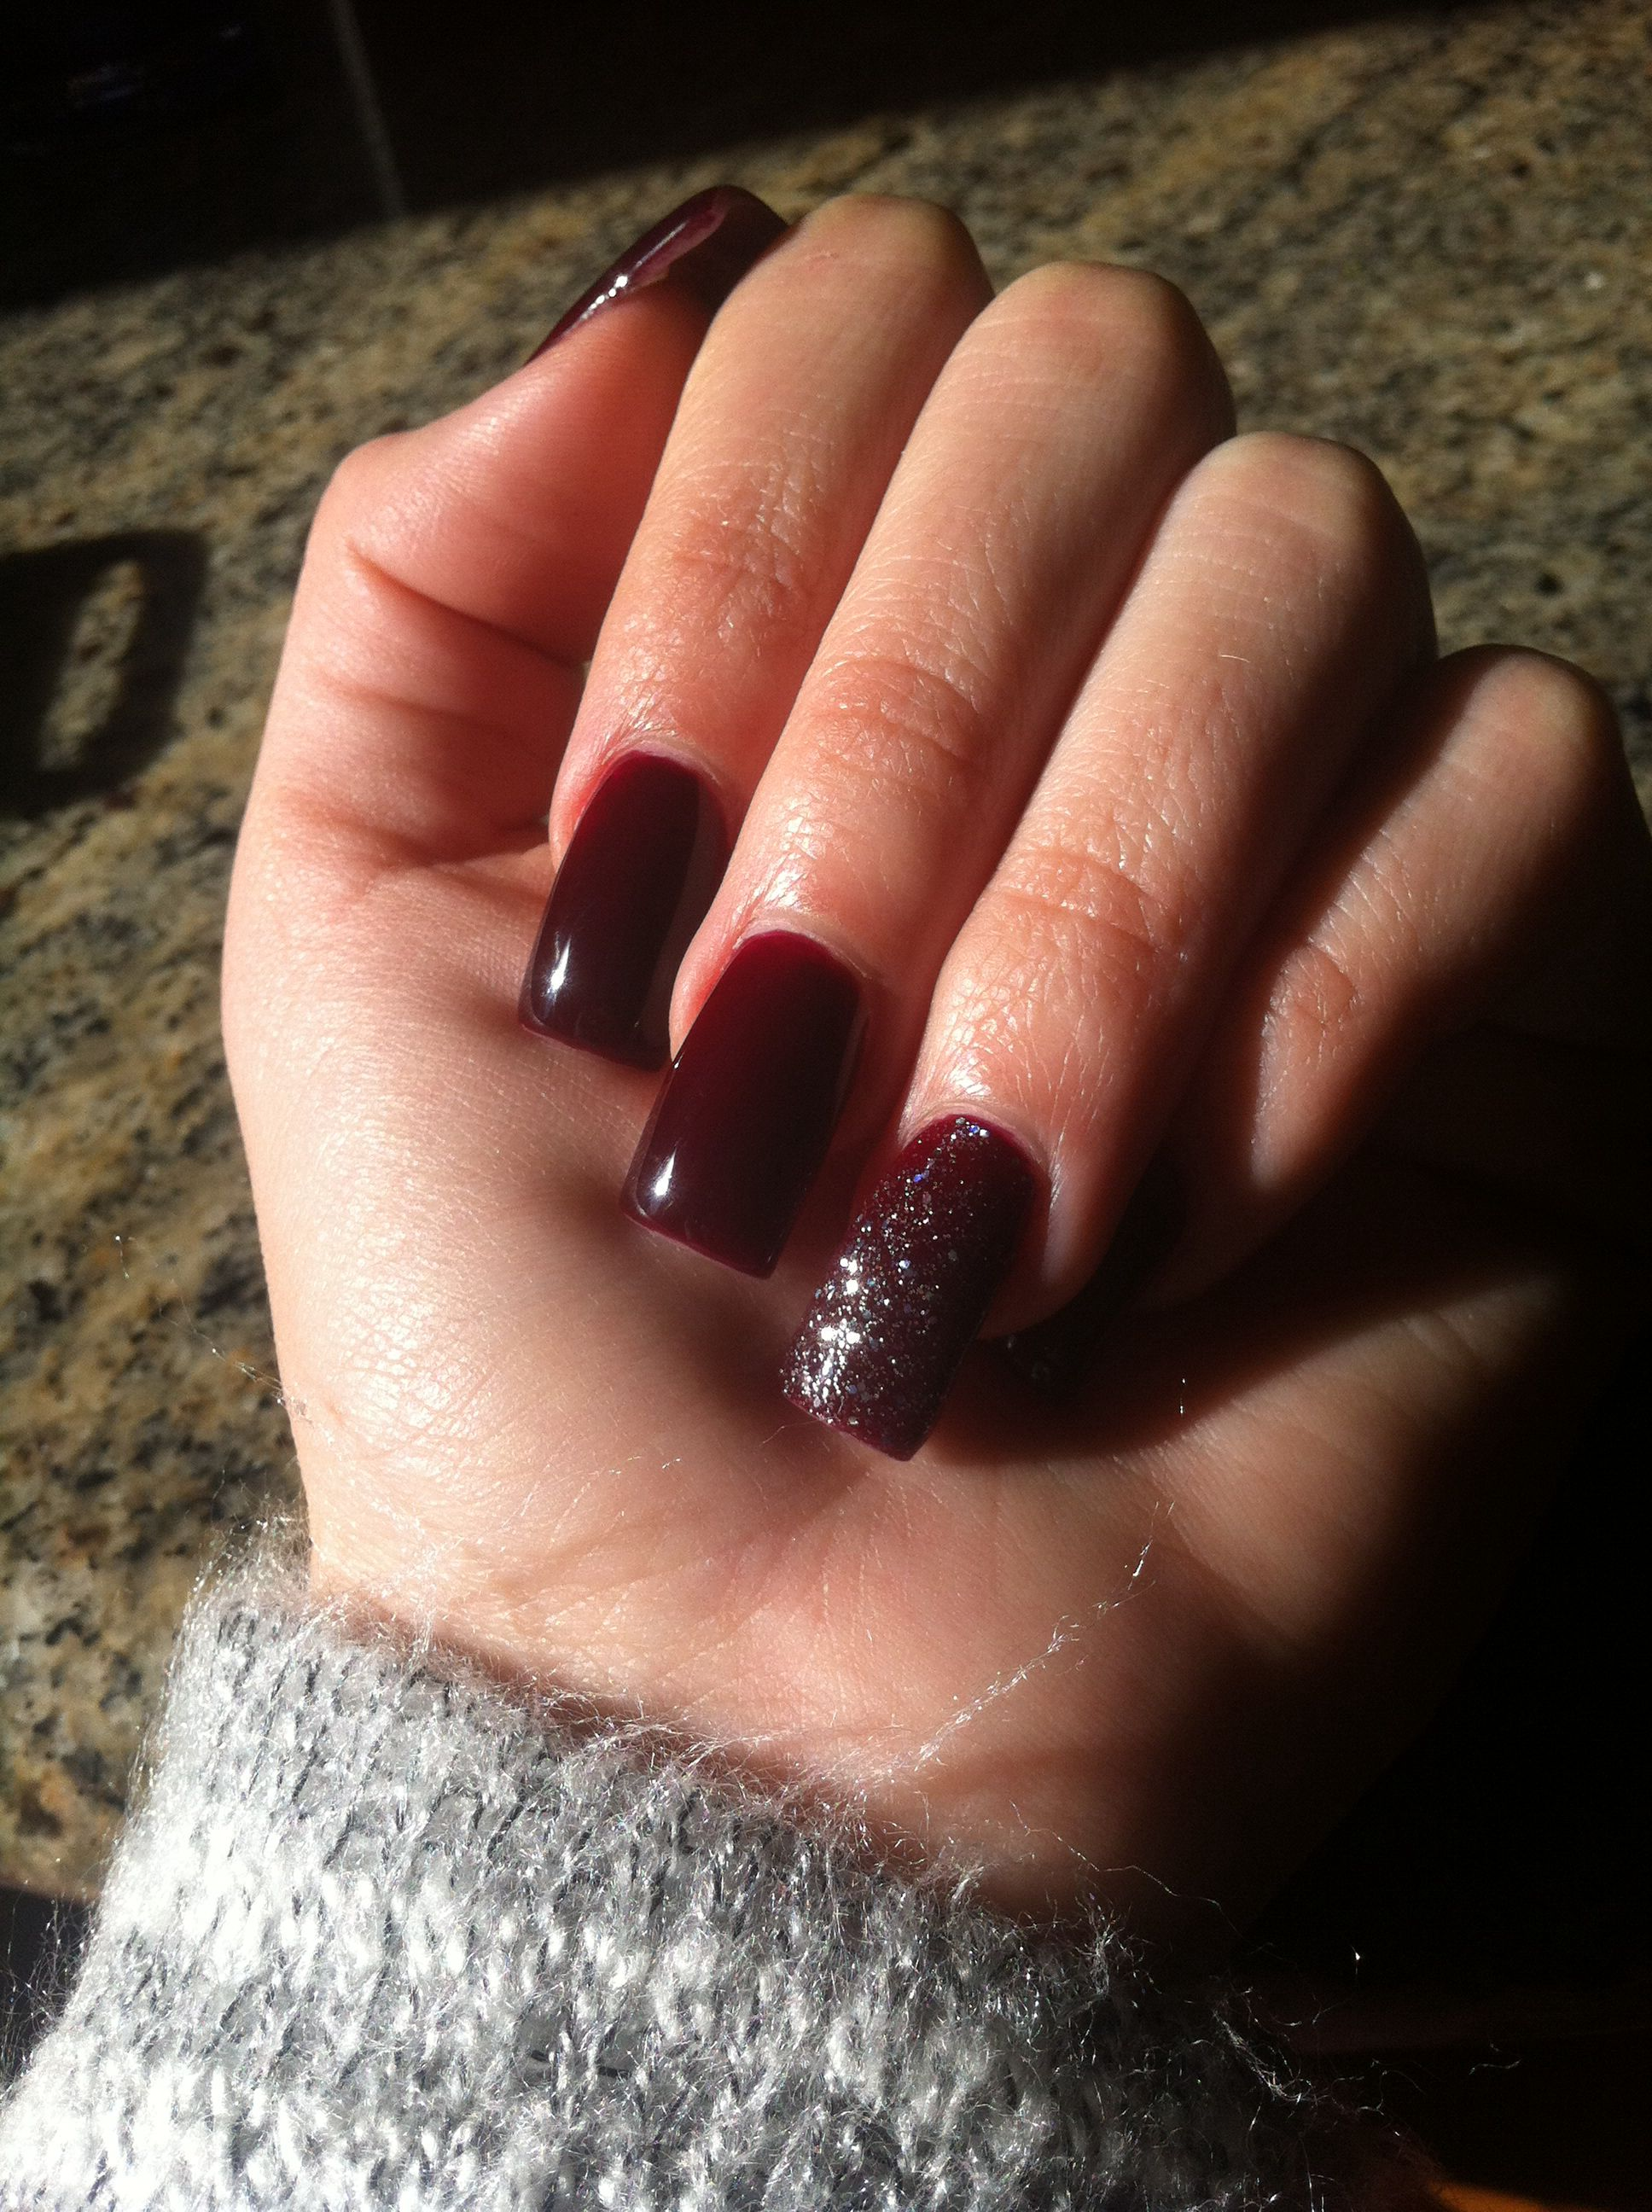 Blood red deep burgundy nails with silver sparkle #nails | Awesome ...